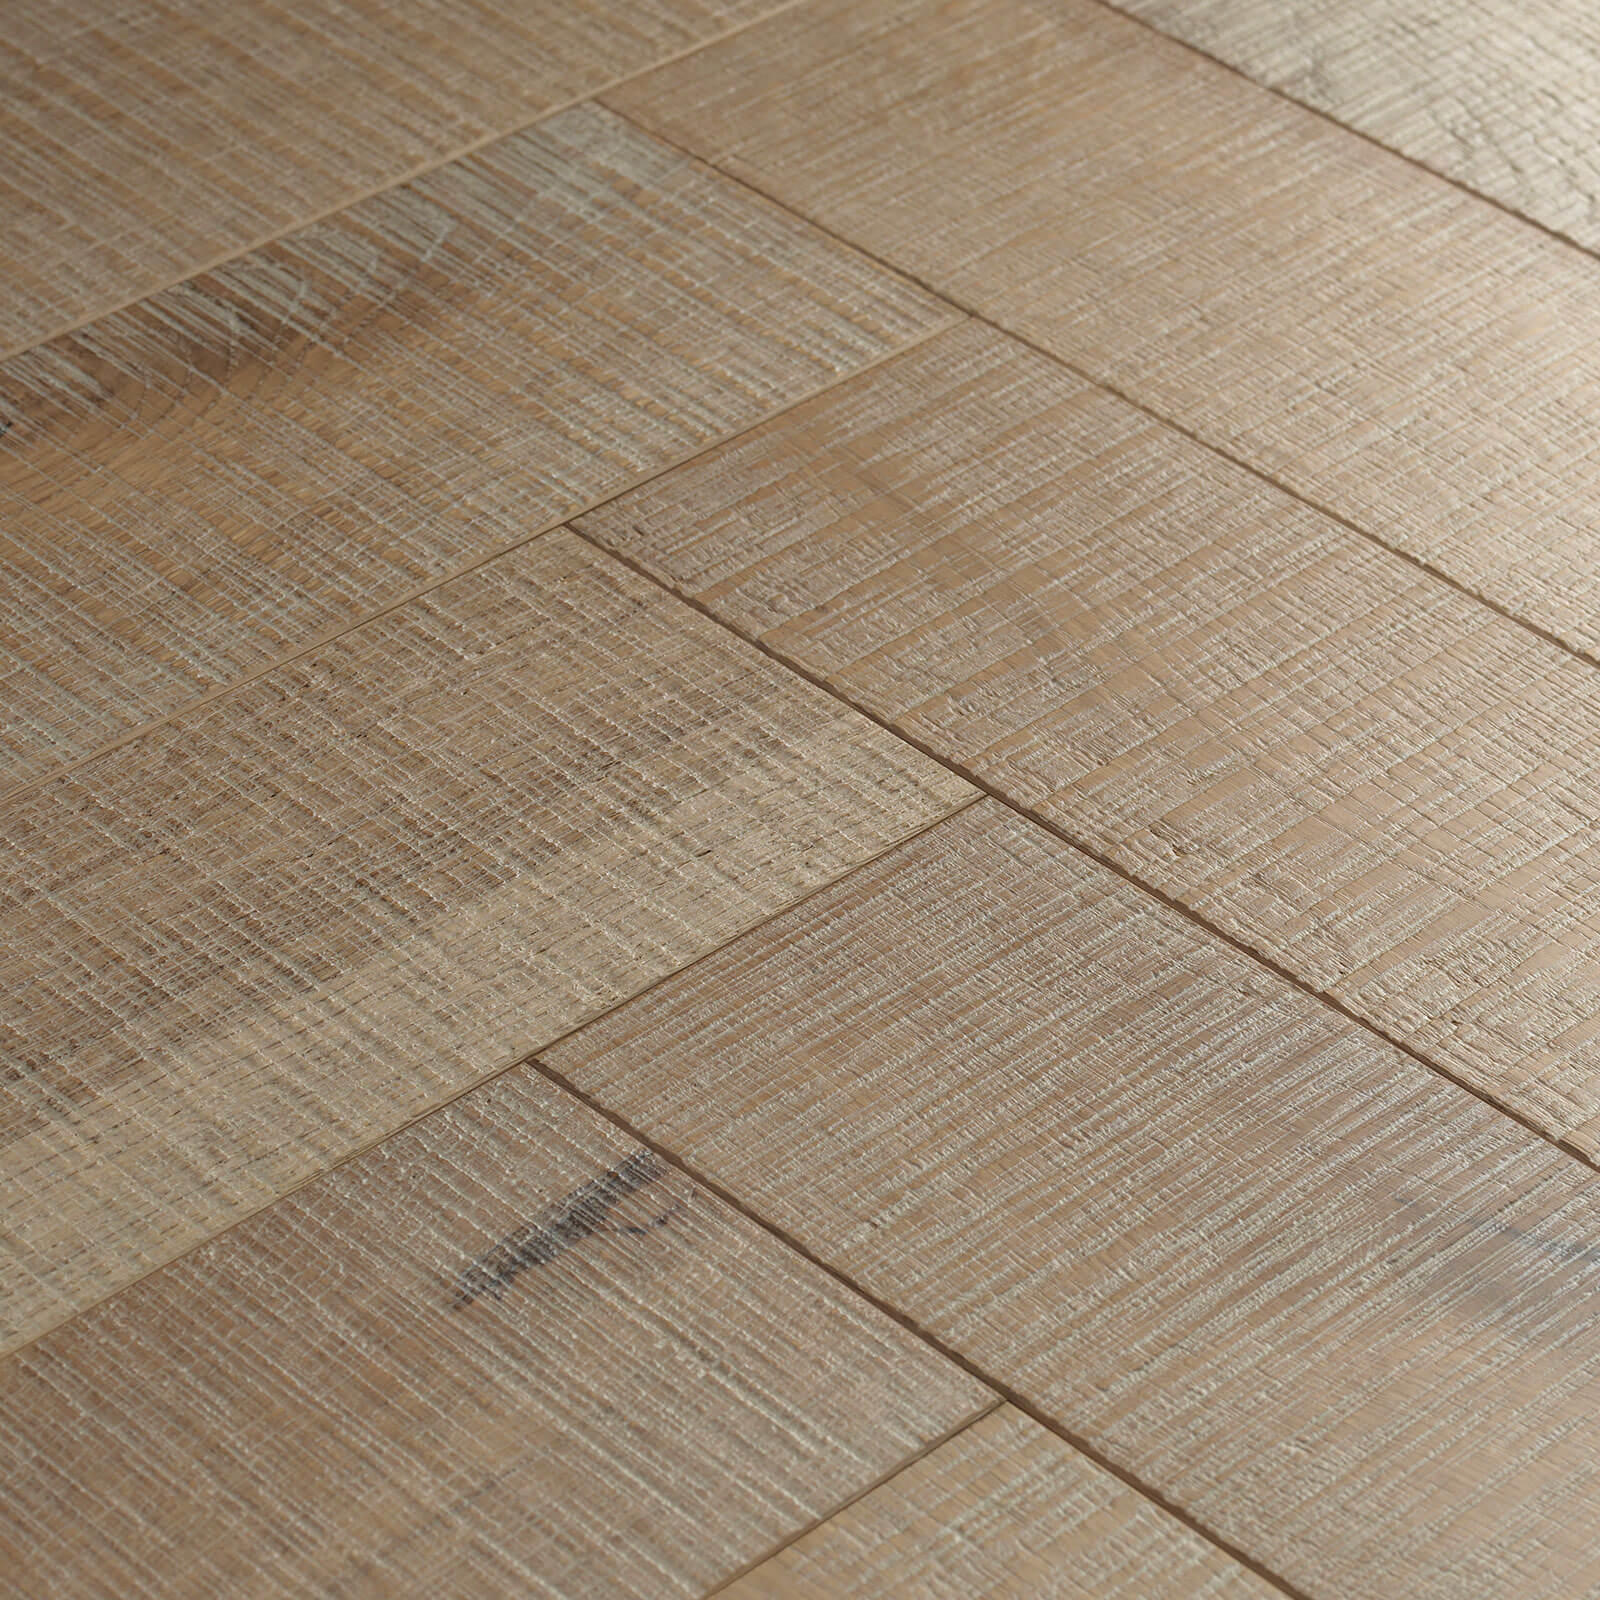 Woodpecker Goodrich Herringbone Salted Oak Brushed & Matt Lacquered Engineered Wood Flooring 32-SGR-001